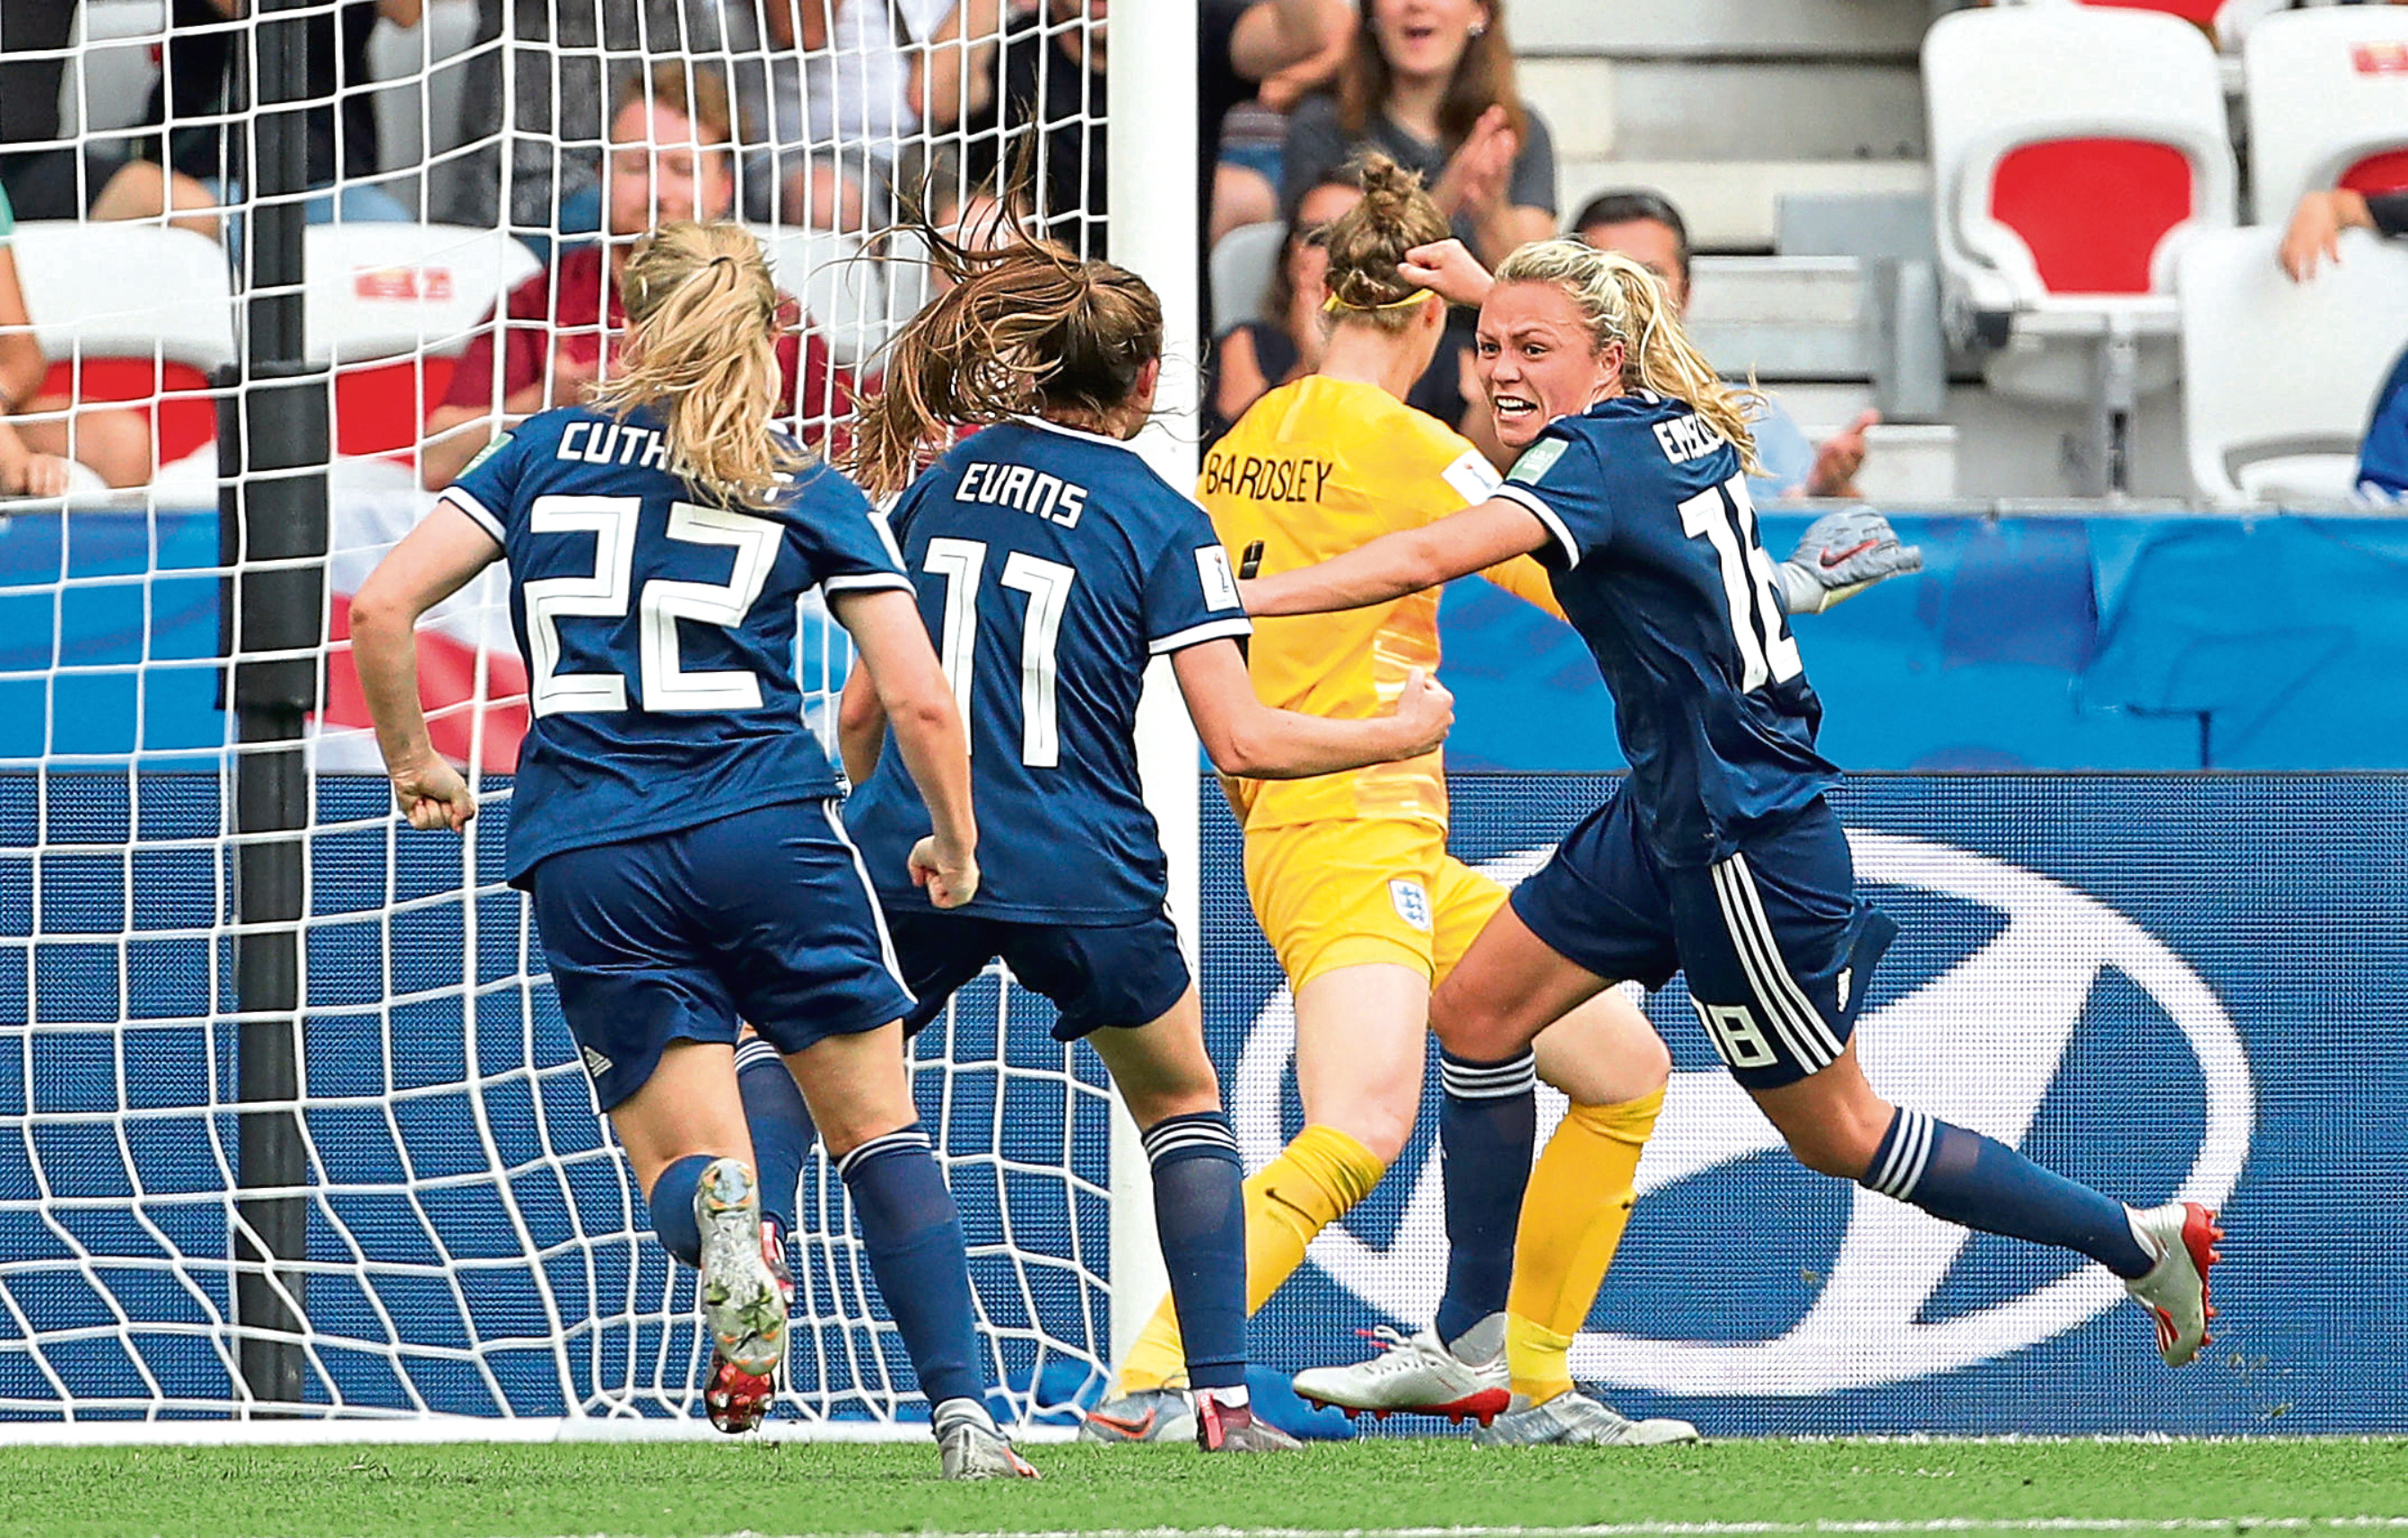 Scotland's Claire Emslie, right, celebrates scoring her side's first goal of the game during the FIFA Women's World Cup, Group D match at the Stade de Nice.